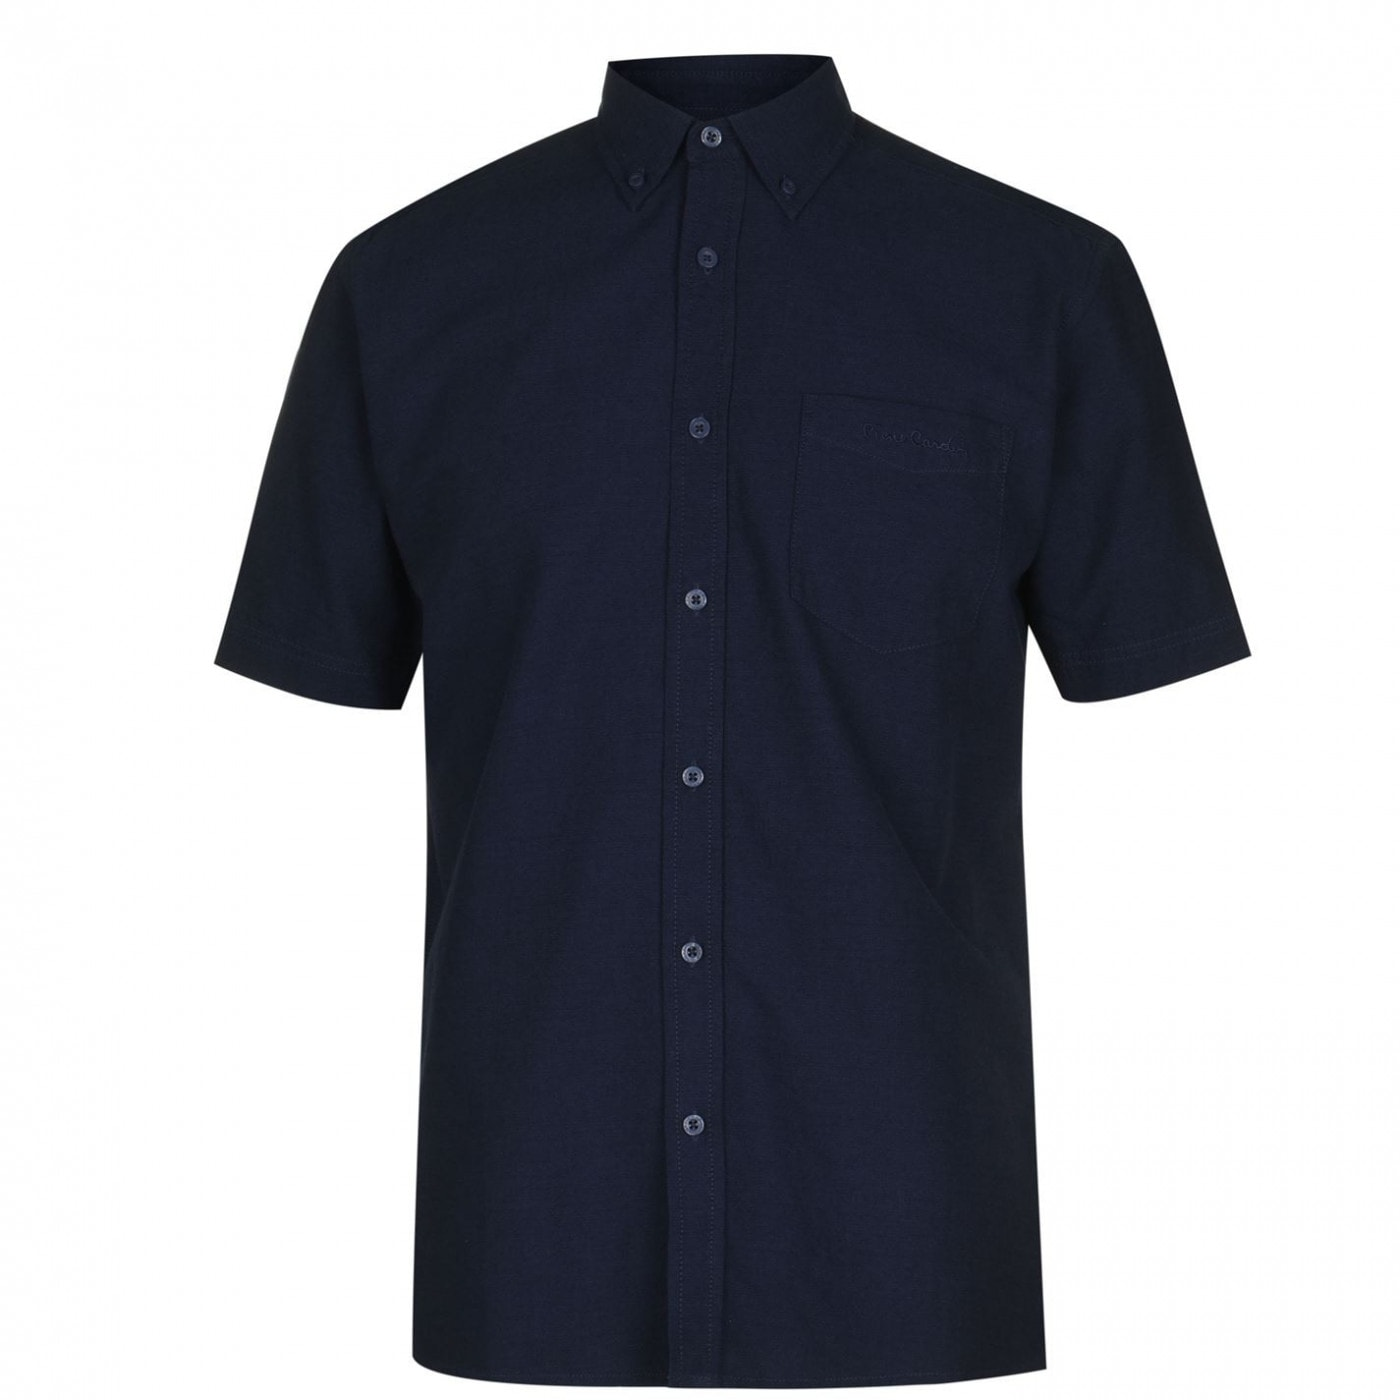 Pierre Cardin Oxford Shirt Mens